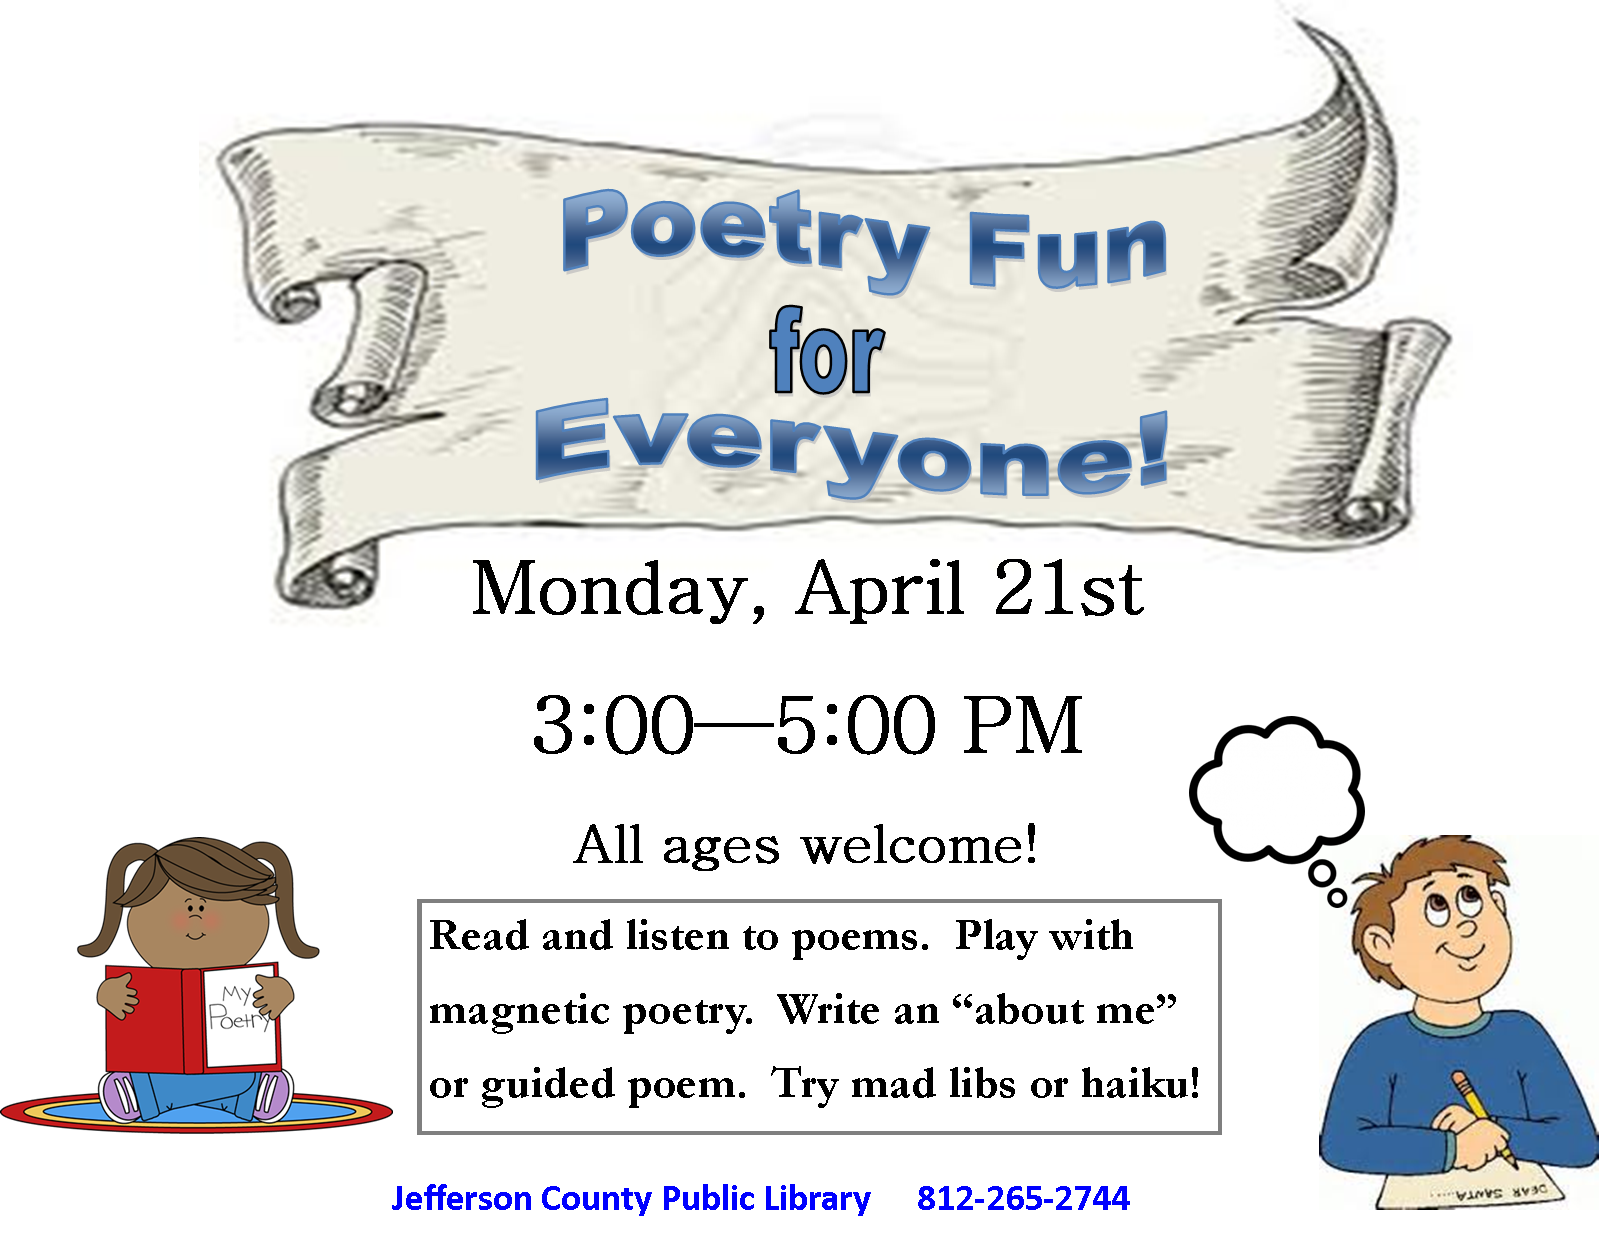 Poetry clipart haiku. Fun for everyone on